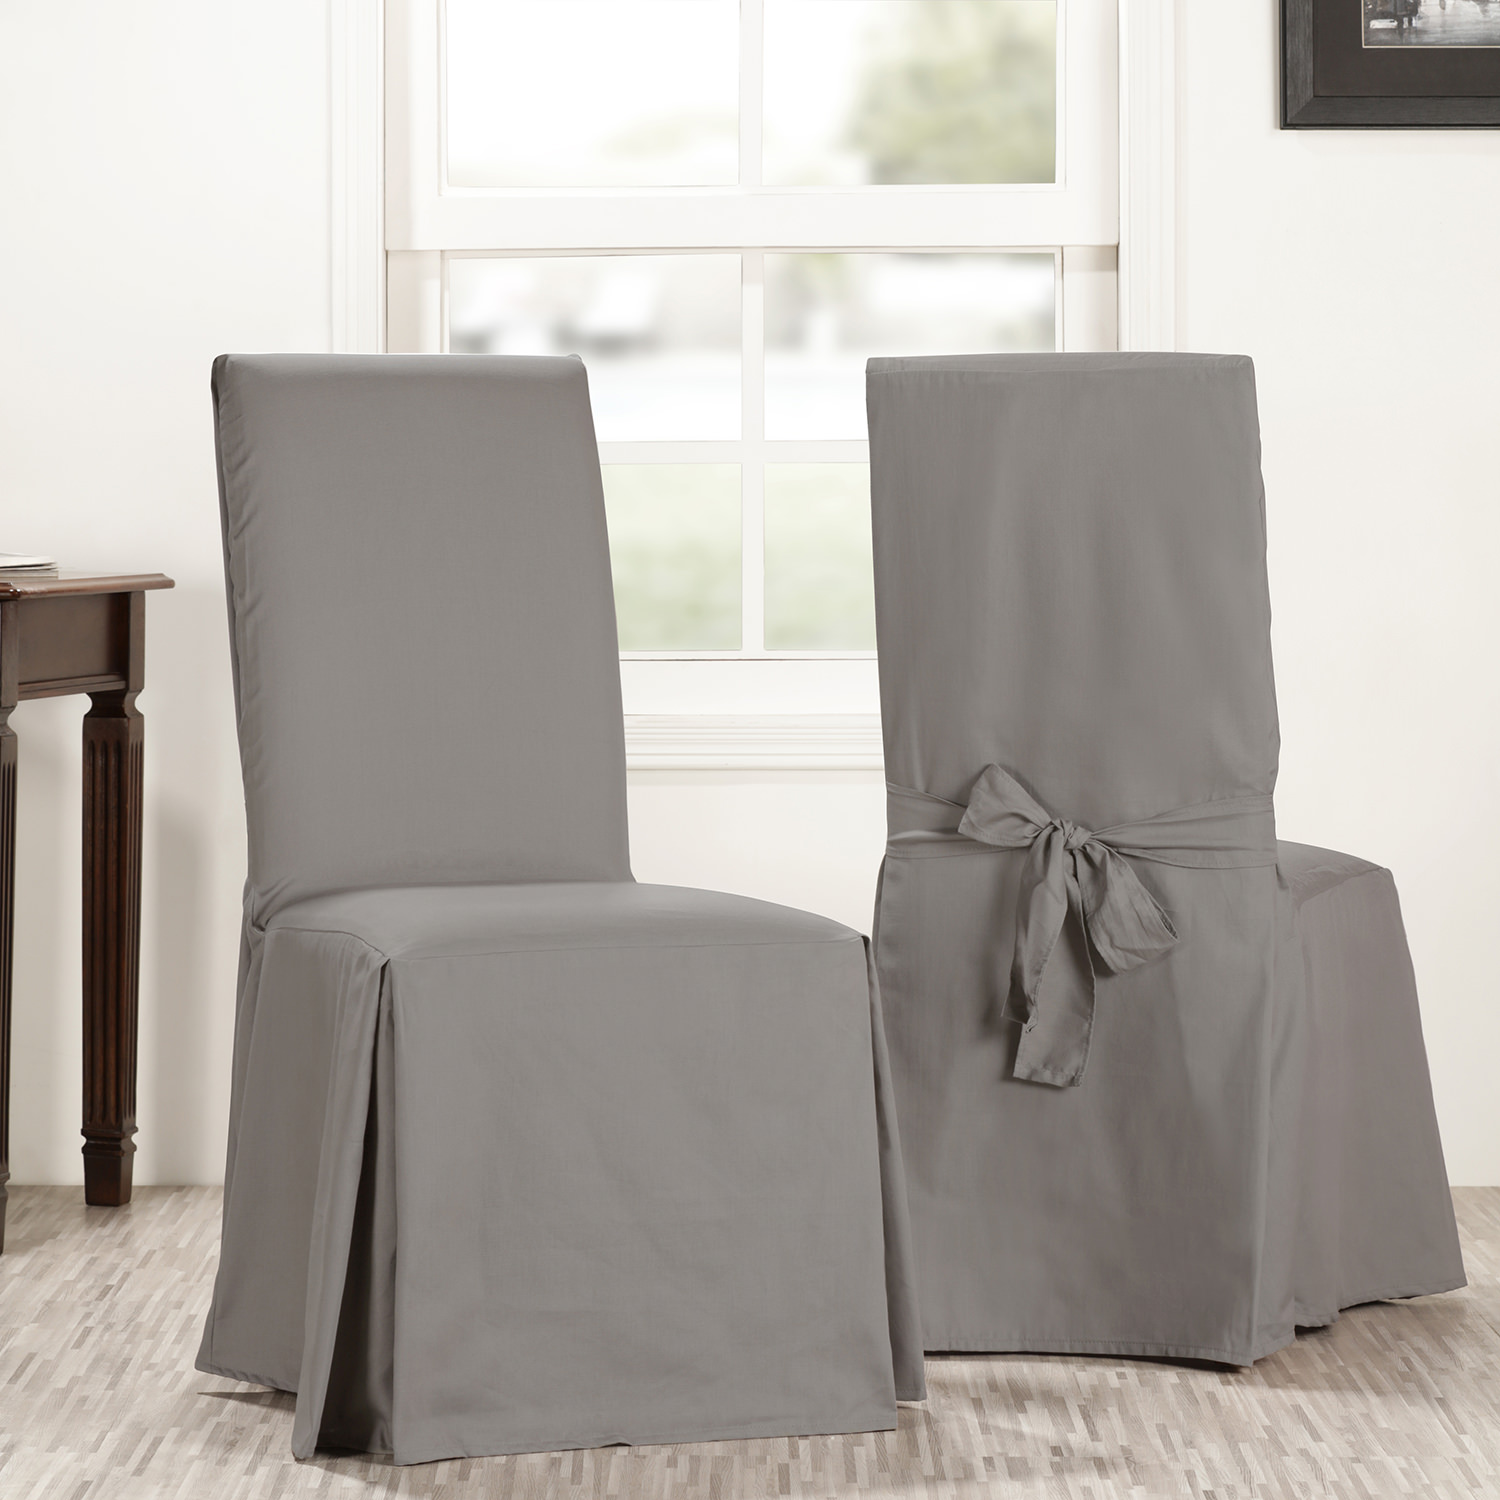 Millstone Gray Solid Cotton Chair Covers (Sold As Pair)